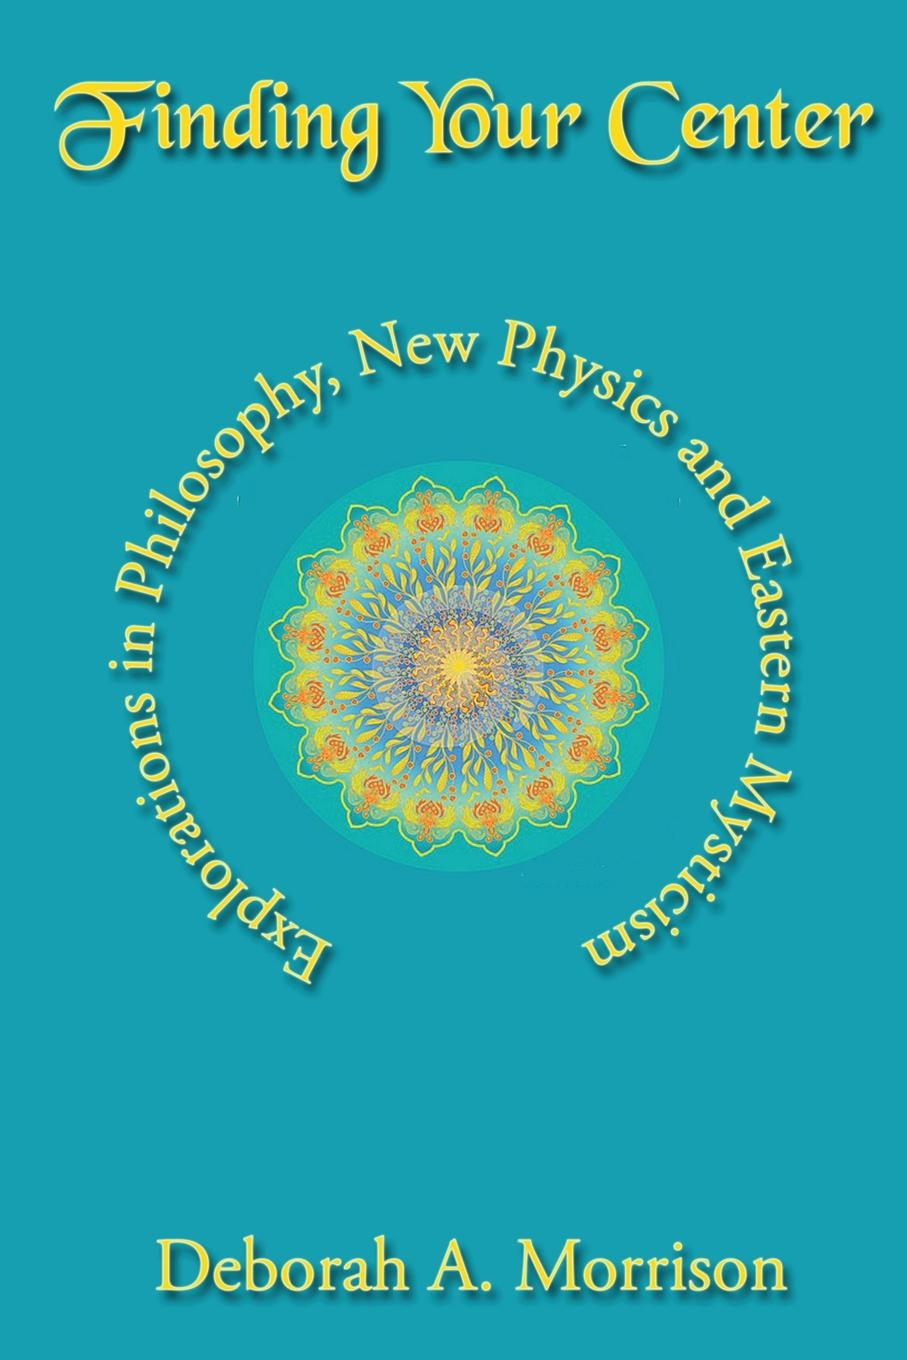 Deborah A Morrison Finding Your Center. Explorations in Philosophy, New Physics and Eastern Mysticism history and philosophy of physics in the south cone